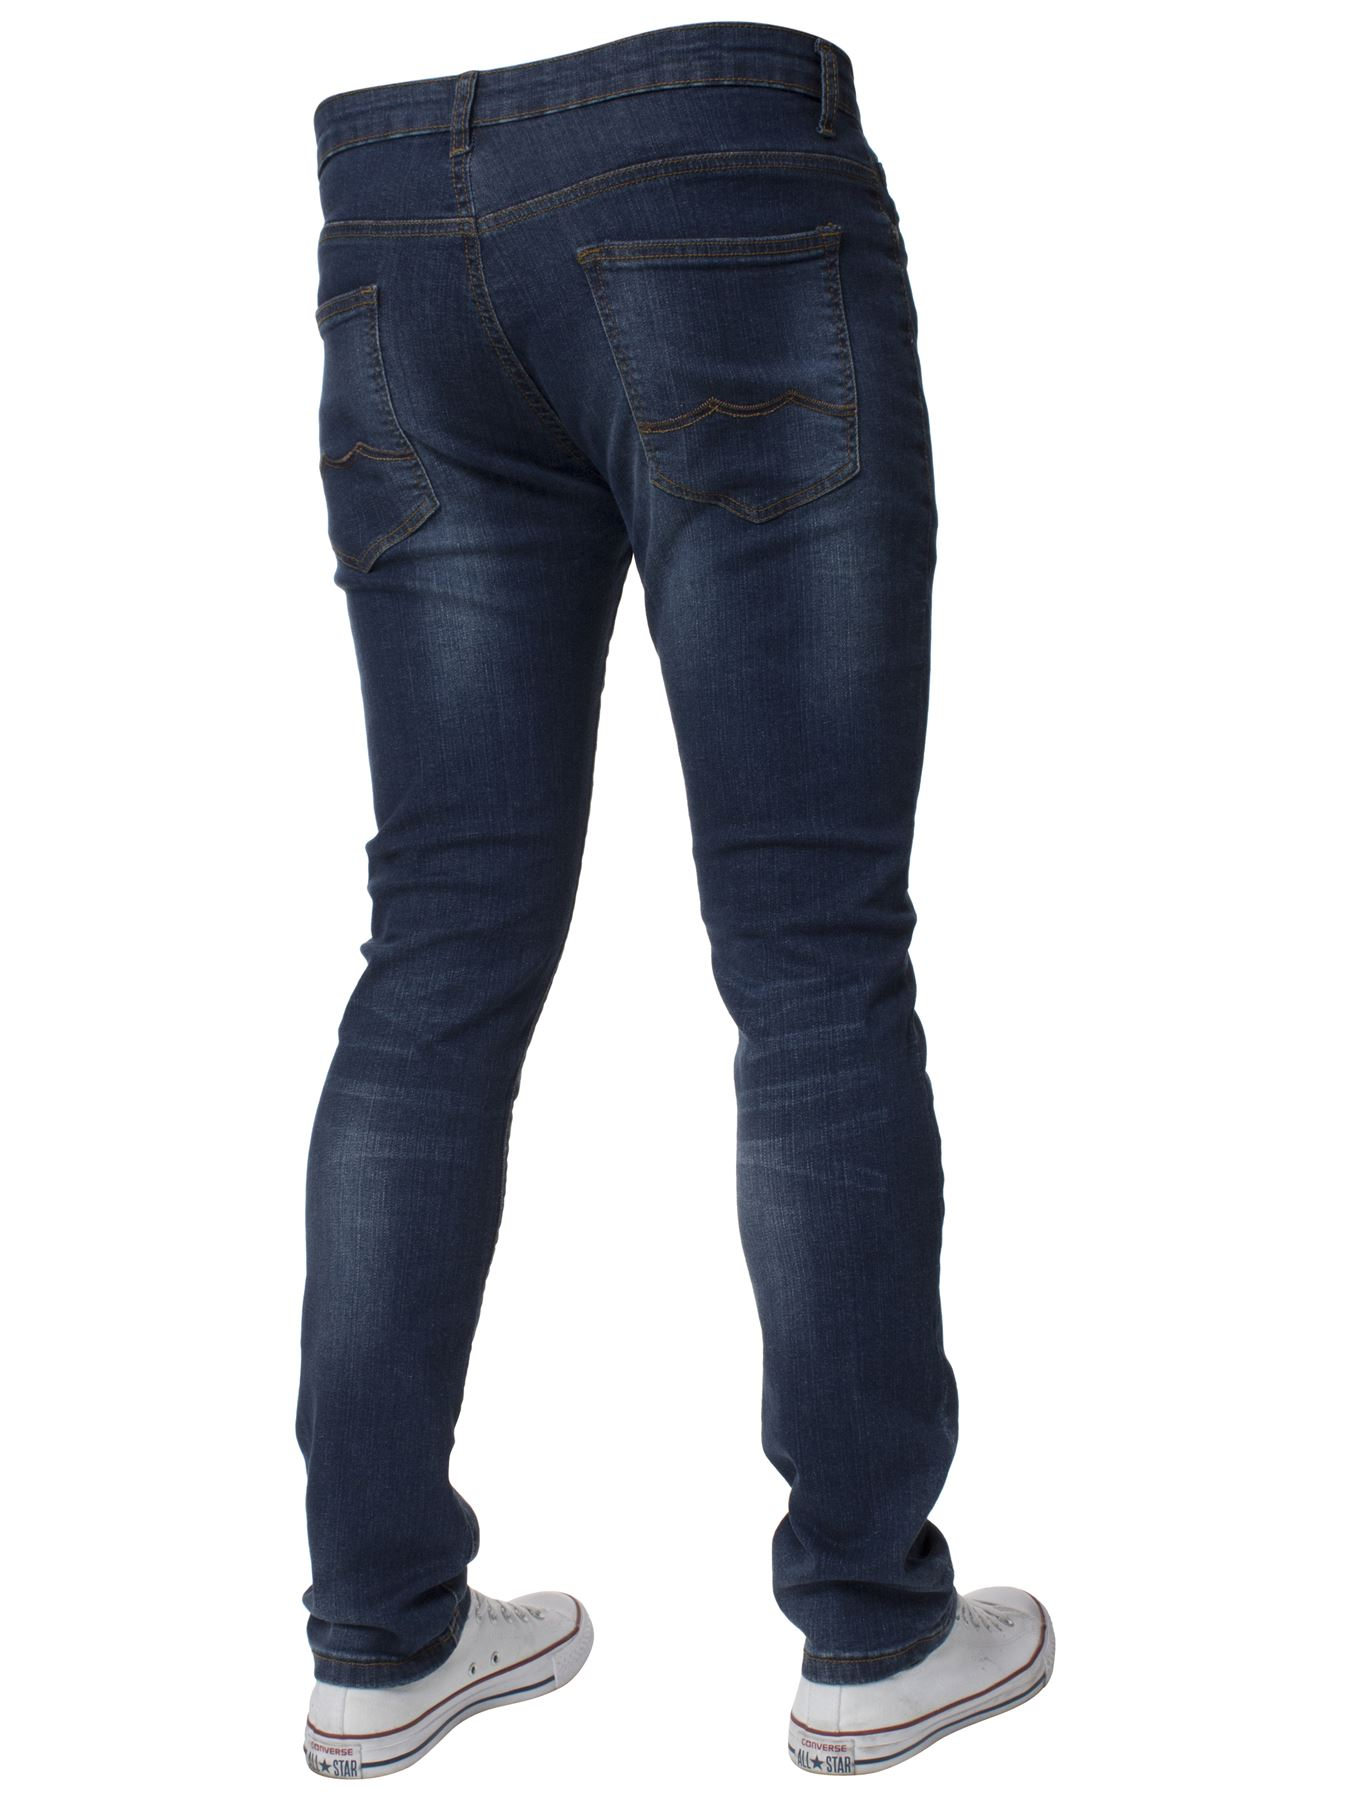 Mens-Skinny-Stretch-Jeans-Slim-Fit-Flex-Denim-Trousers-Pants-King-Sizes-by-Kruze thumbnail 11